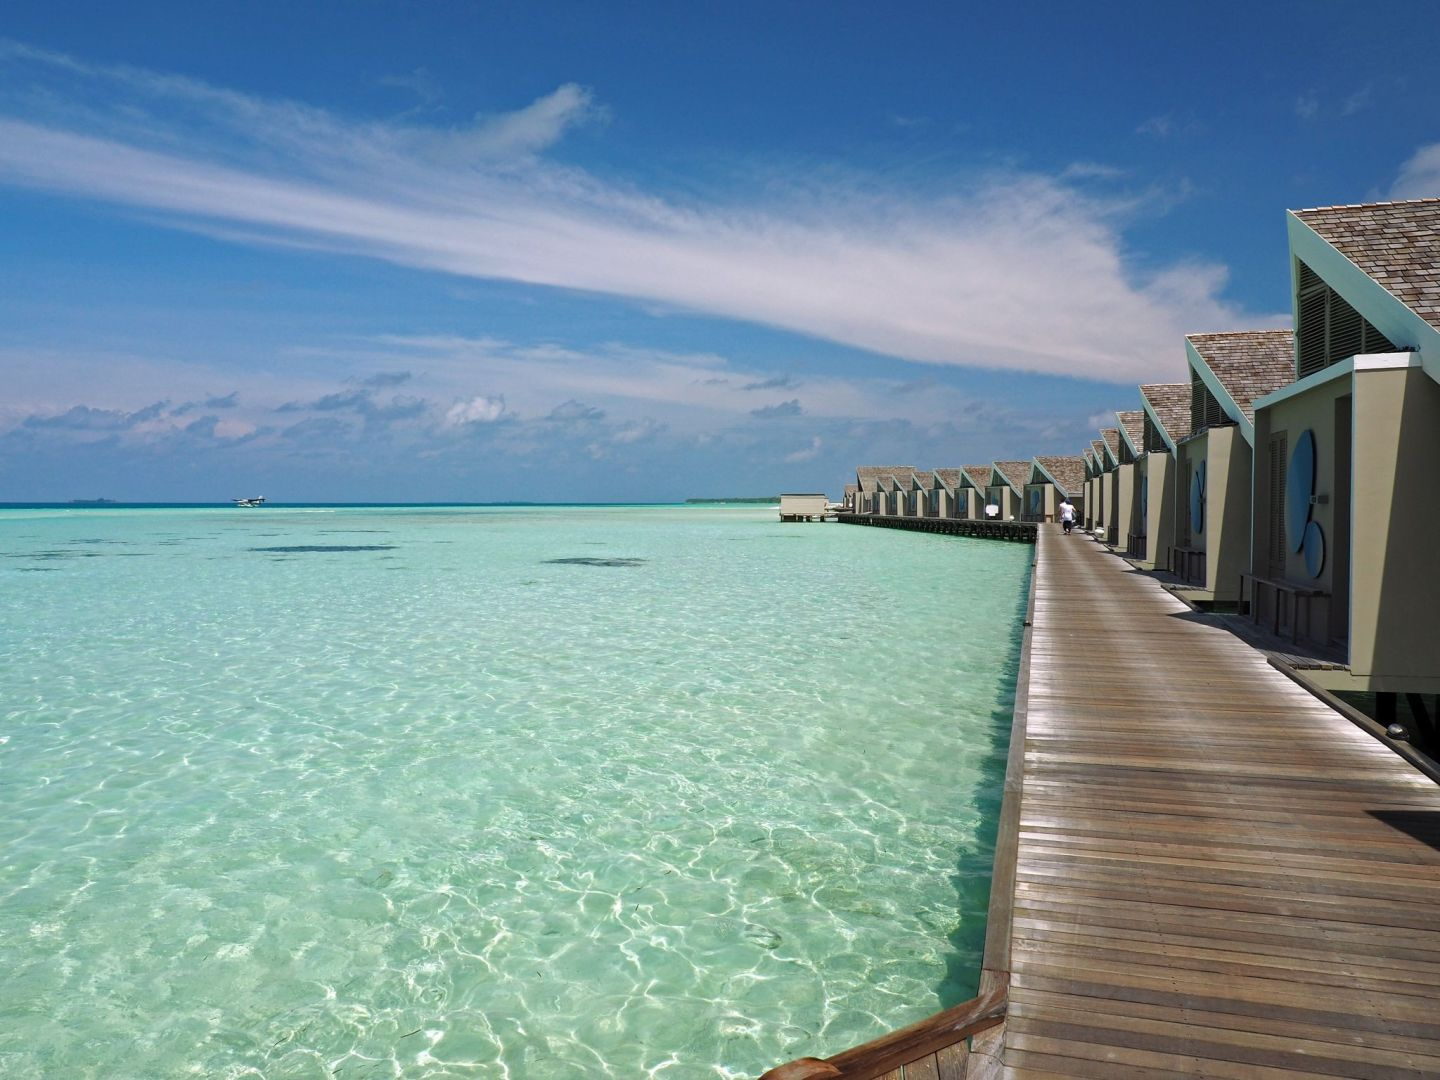 The Maldives: Heaven on Earth